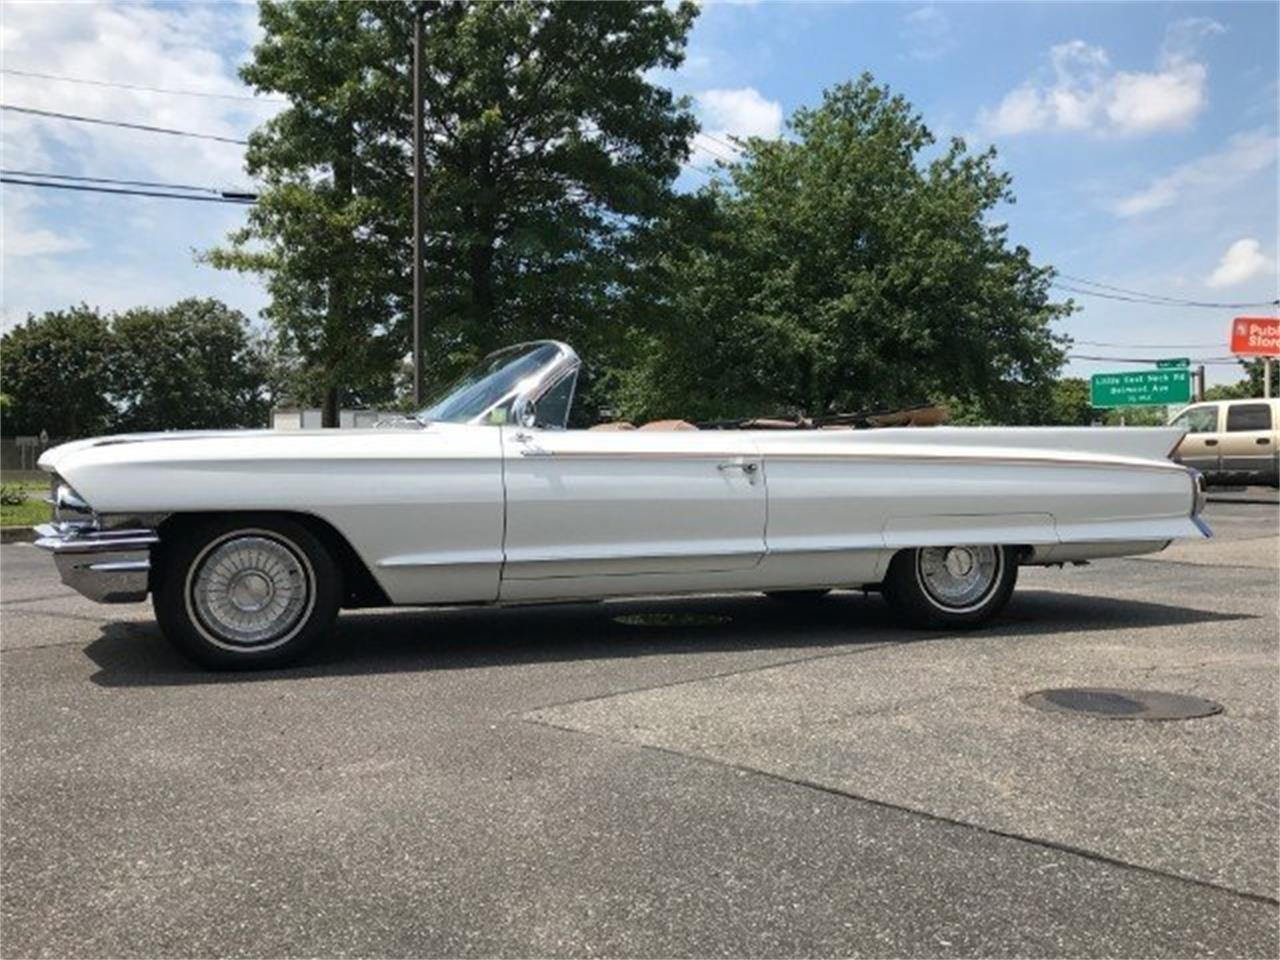 Large Picture of 1962 Cadillac Eldorado located in West Babylon New York - $29,500.00 - LDHM